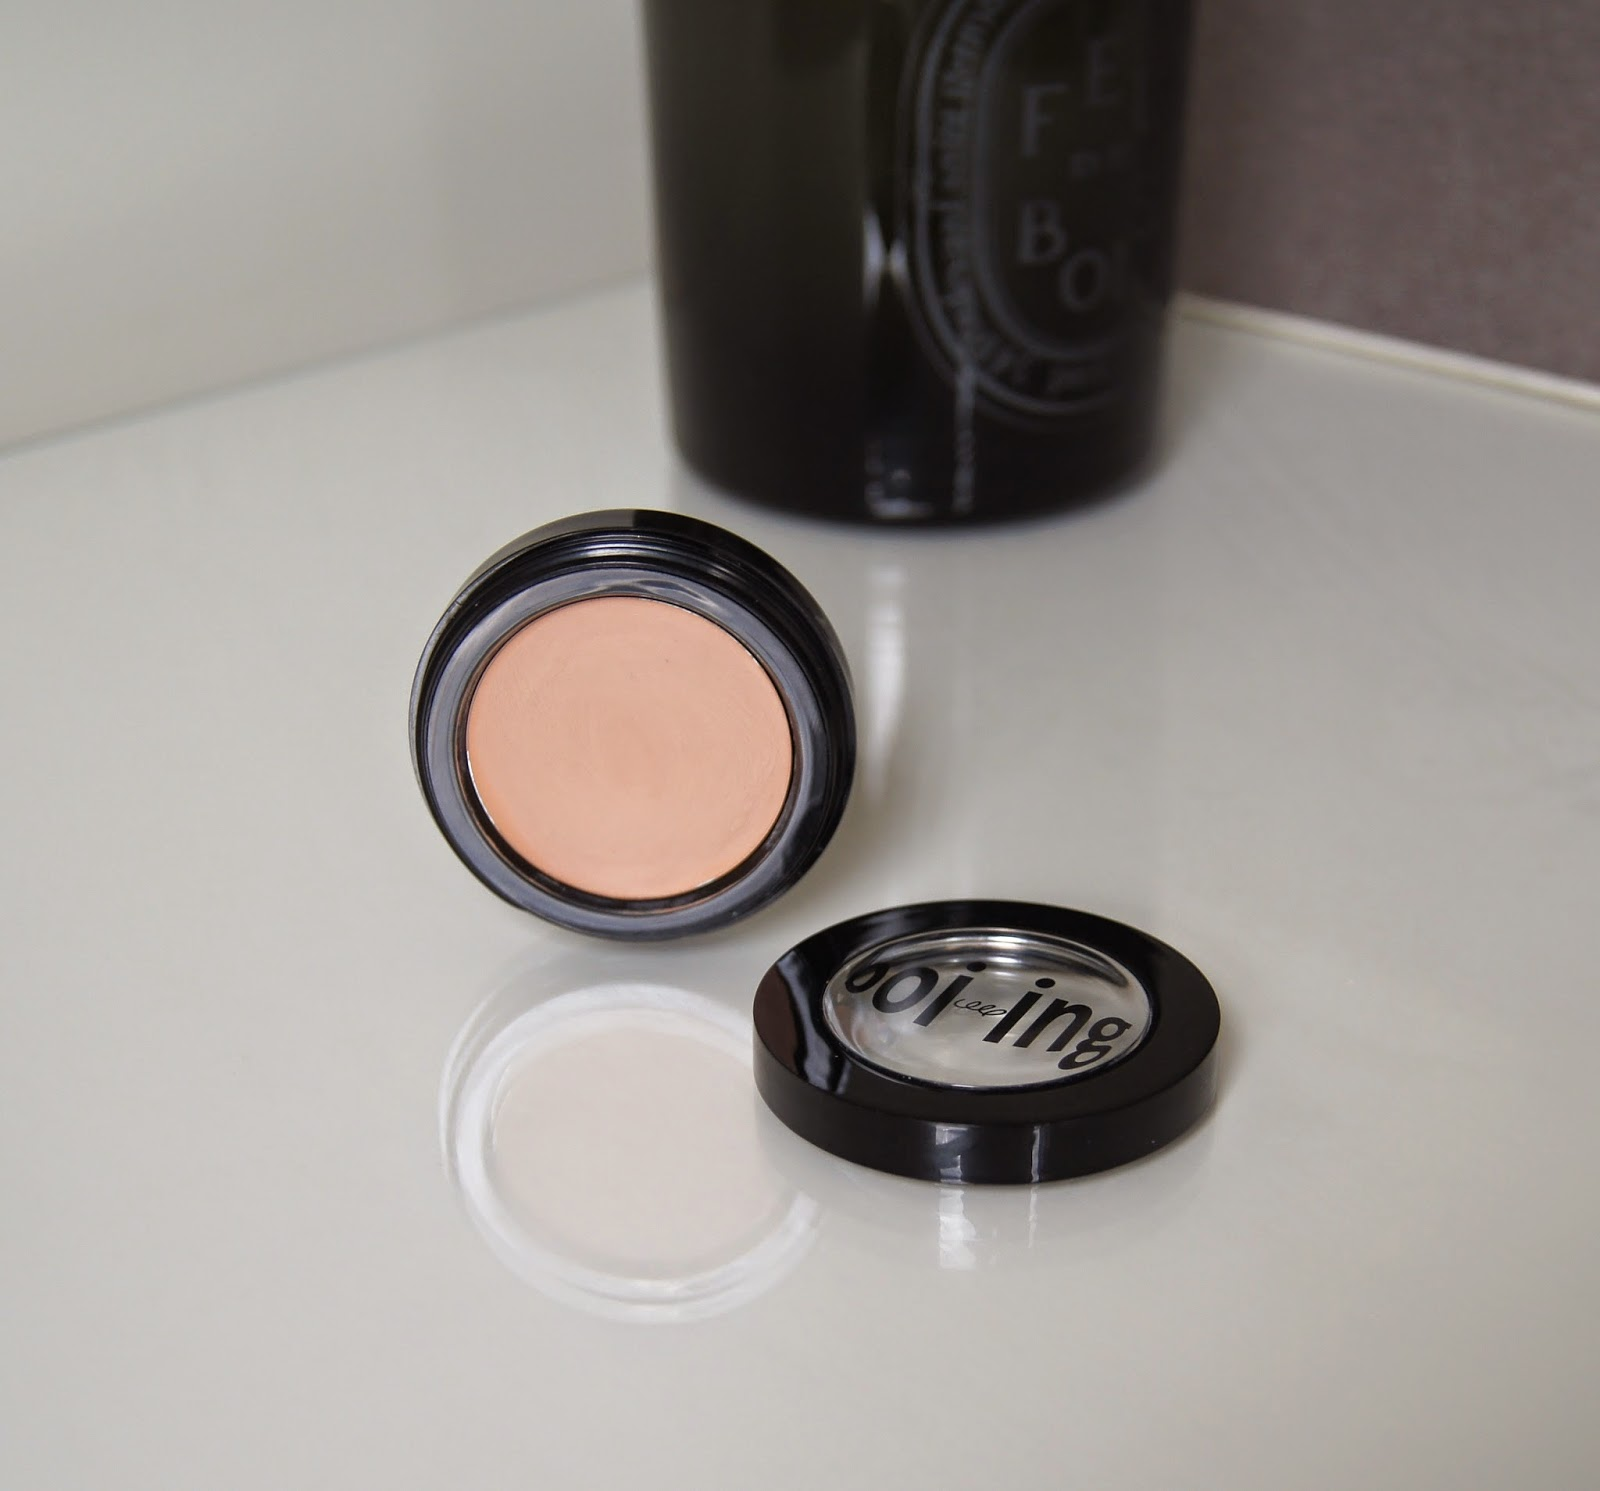 benefit boi-ing industrial strength concealer review